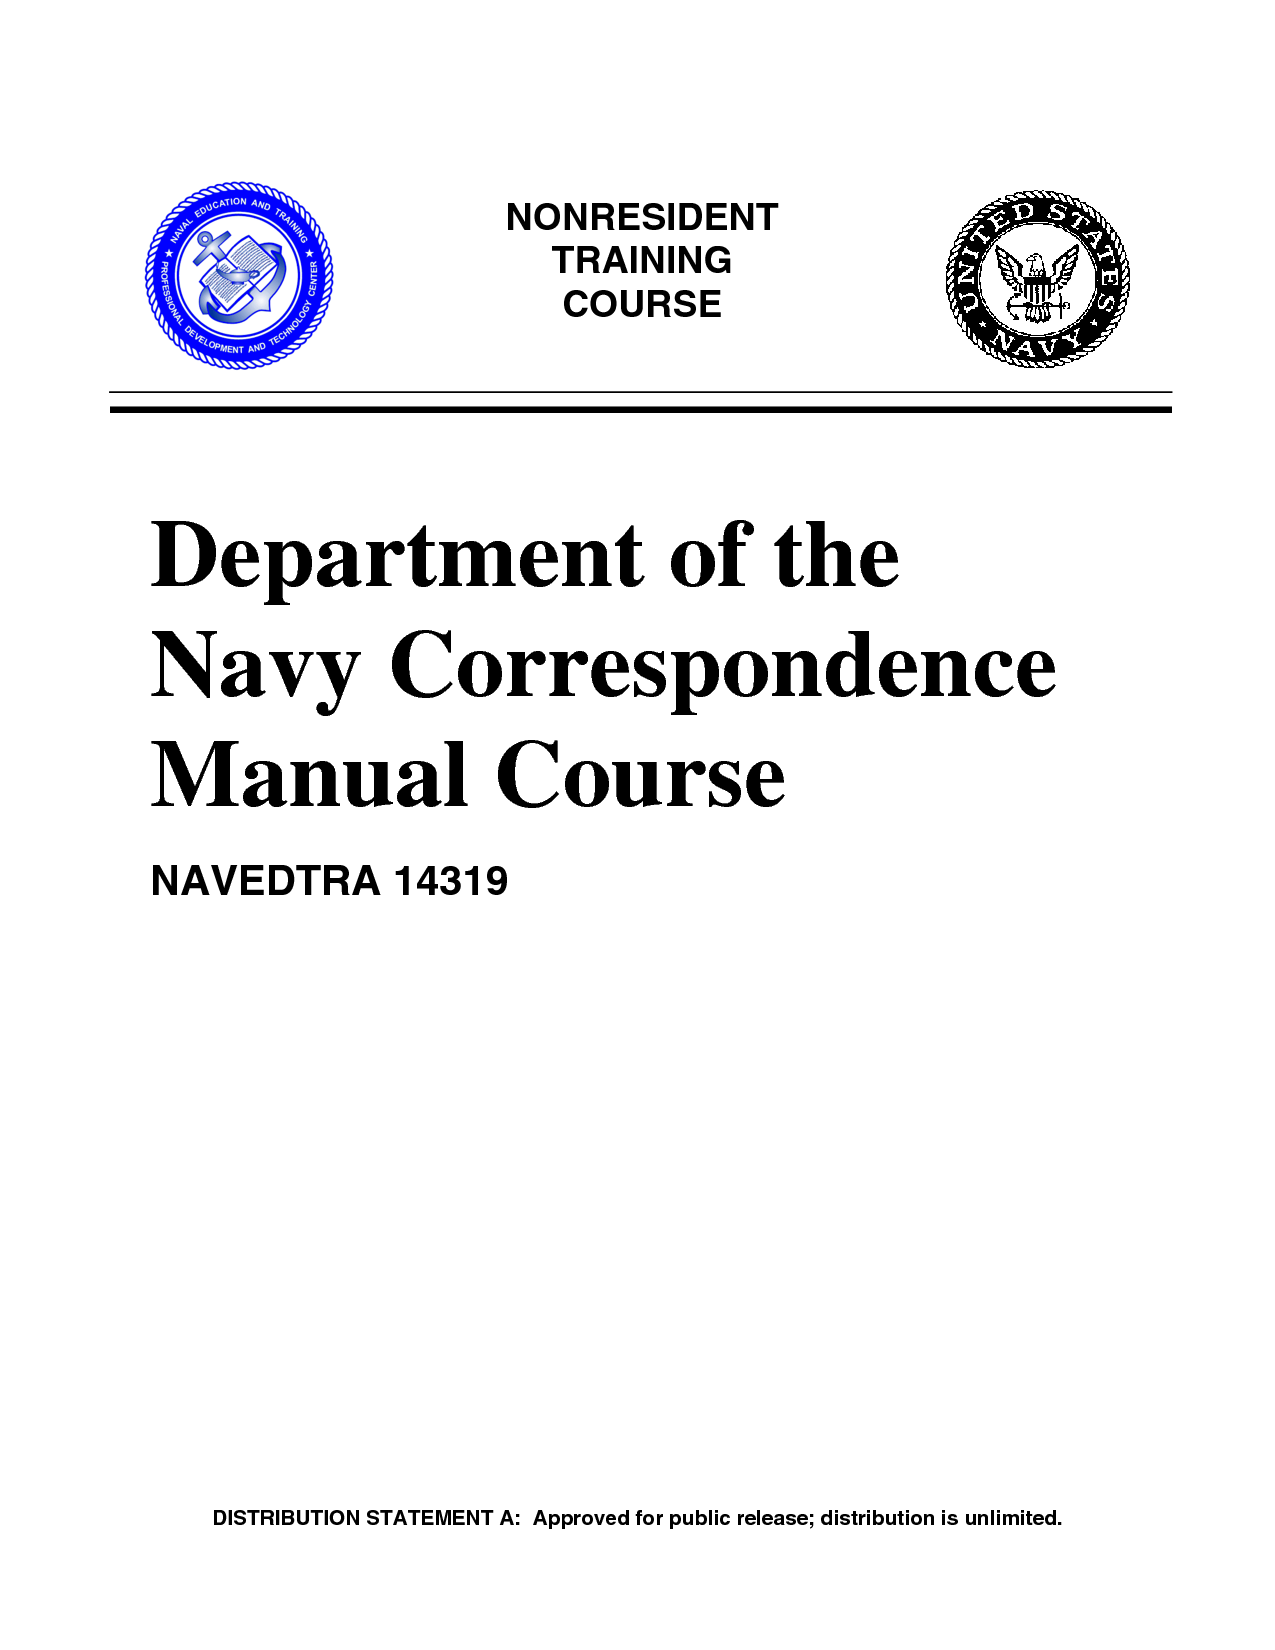 naval training manual user guide manual that easy to read u2022 rh sibere co Aviation Maintenance Clip Art aviation maintenance manual subscription